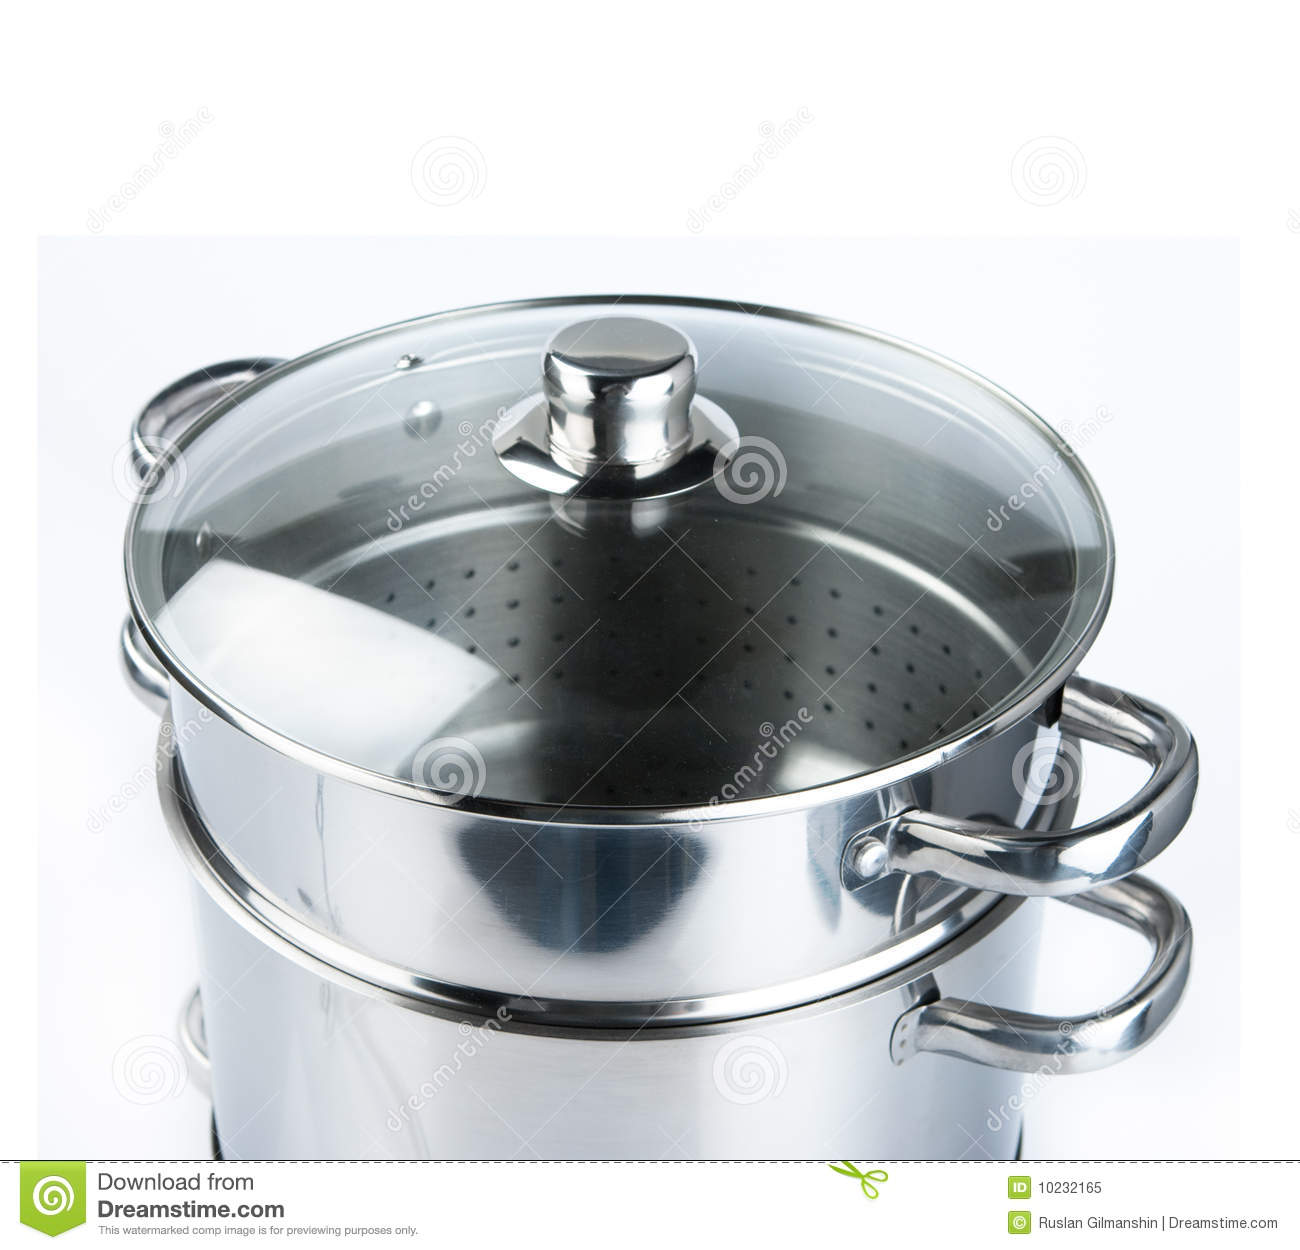 stainless steel cooking pots royalty free stock photo image 10232165. Black Bedroom Furniture Sets. Home Design Ideas